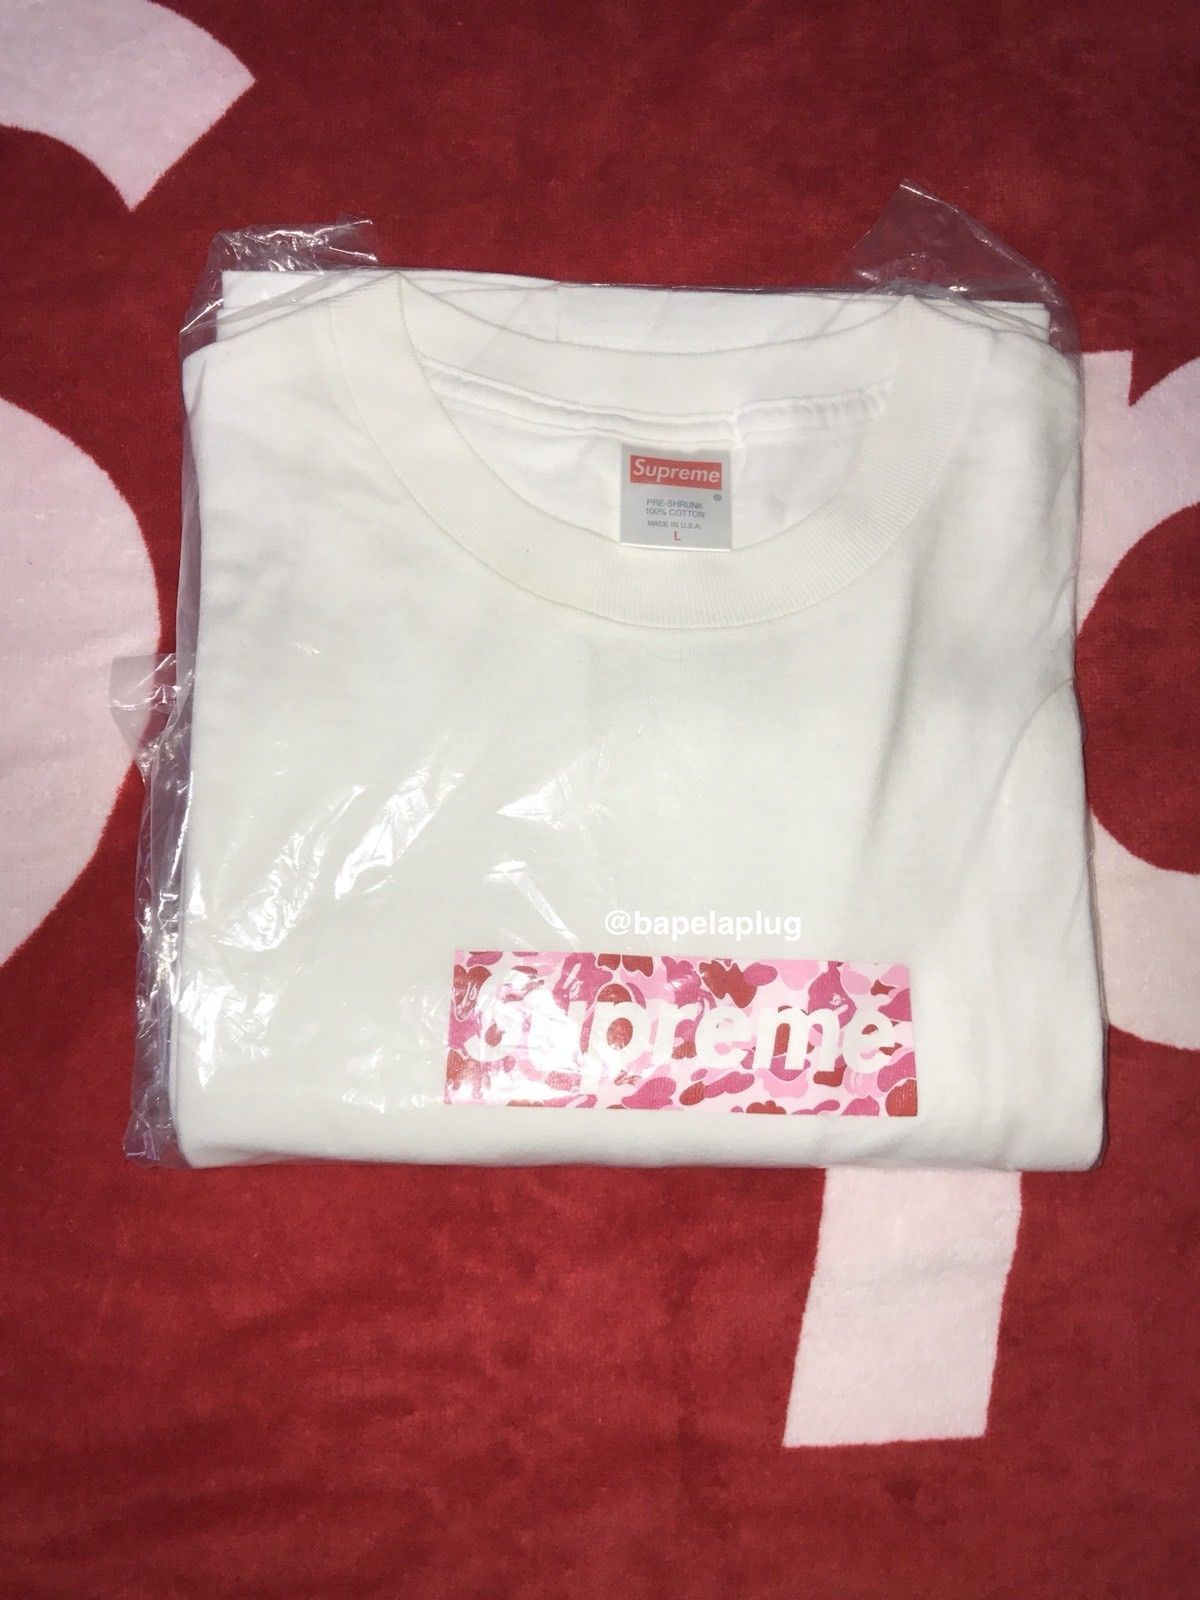 huge discount 65cb4 0fd0f SUPREME x BAPE Pink ABC Camo Box Logo T-shirt WHITE L Large Japan A bathing  ape